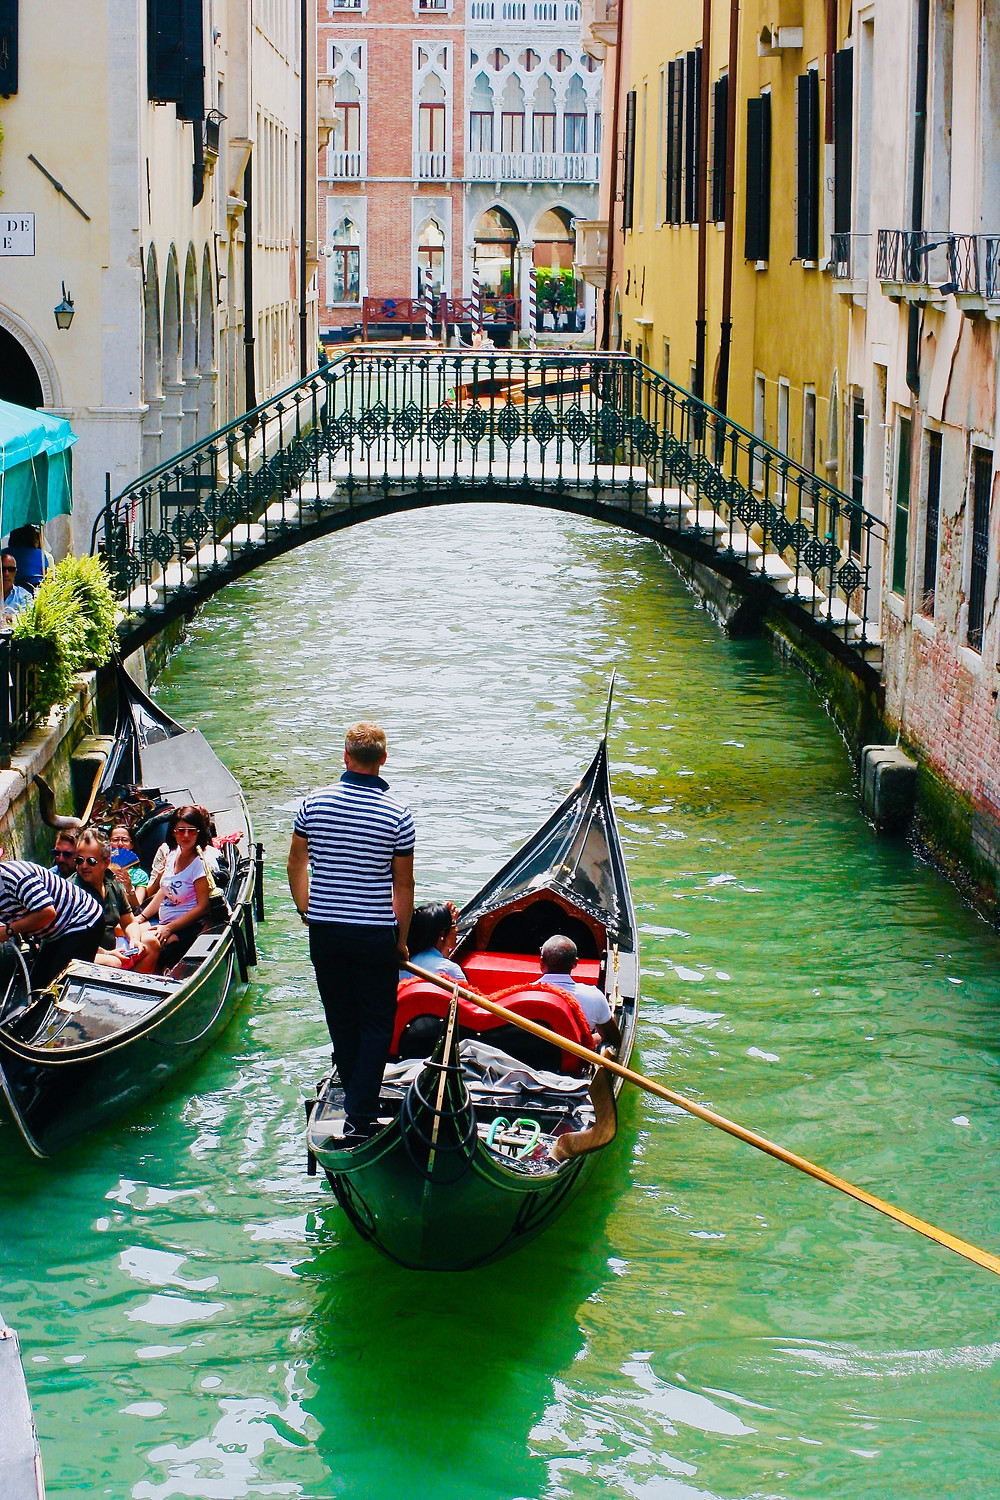 a picturesque but expensive gondola ride in Venice